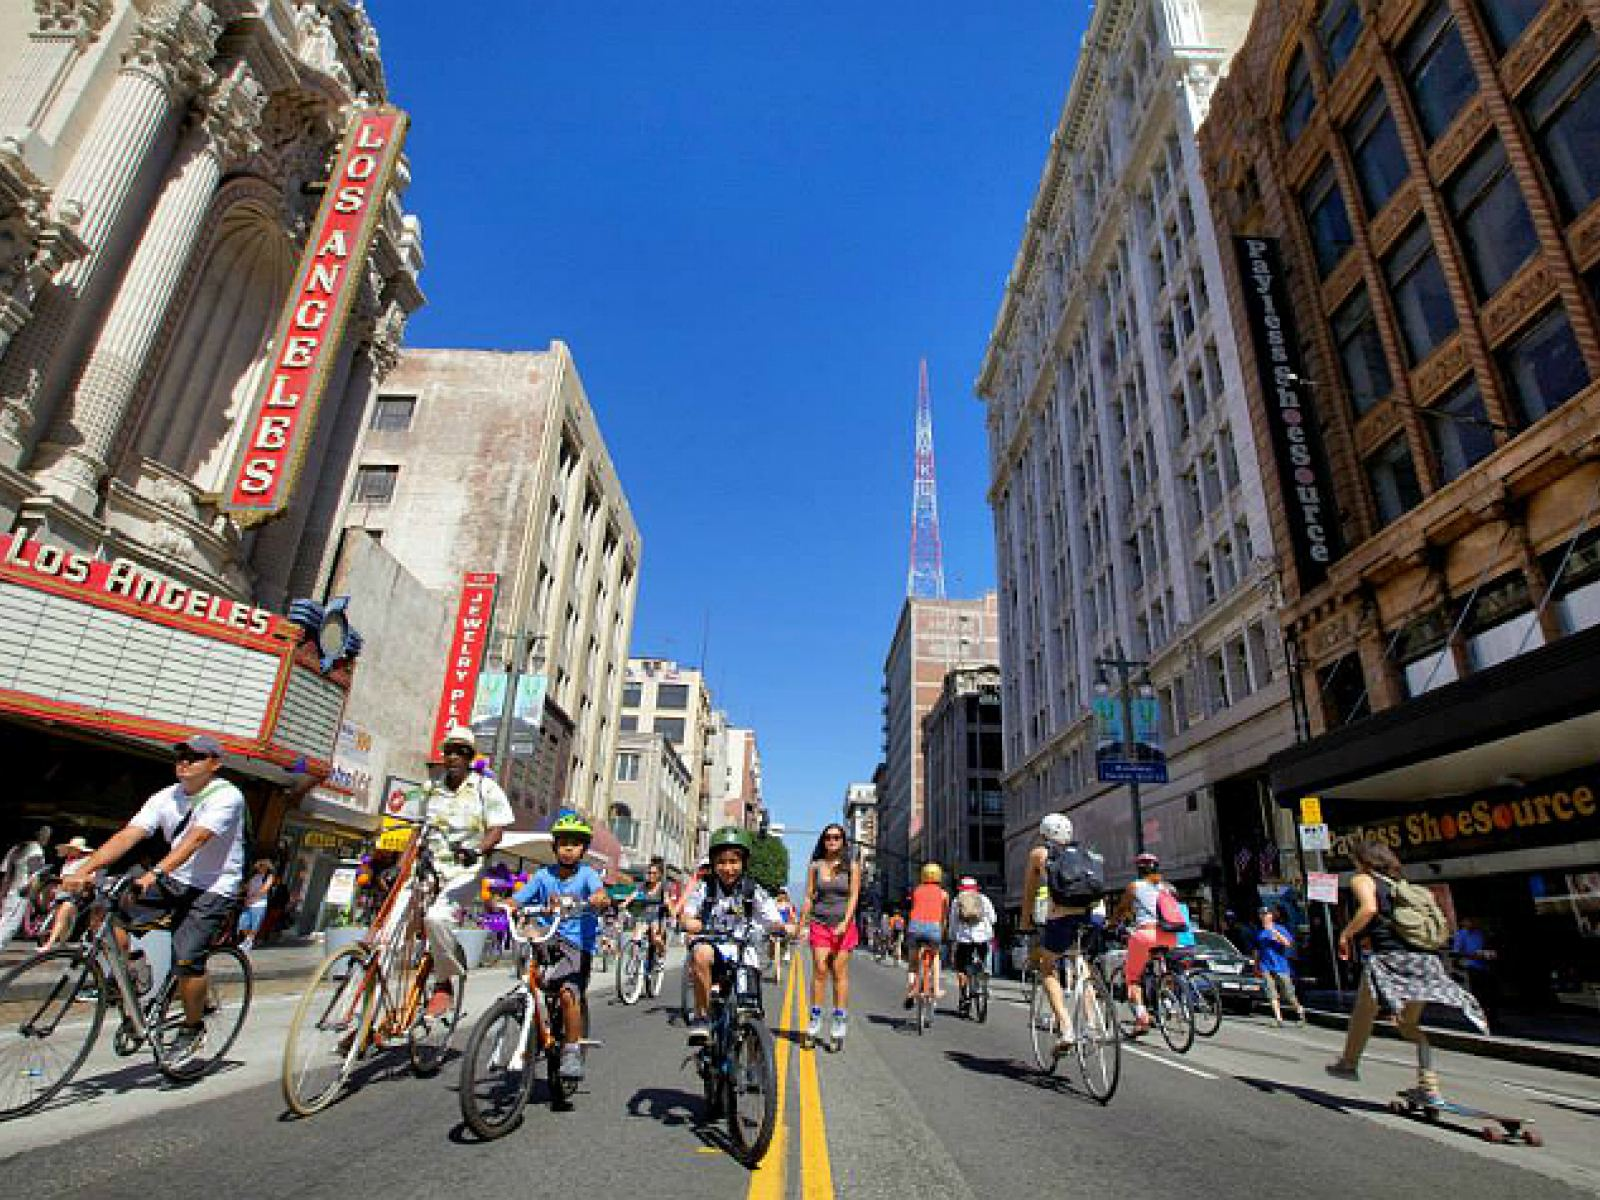 Main image for article titled The Guide to Car-Free Events in Los Angeles